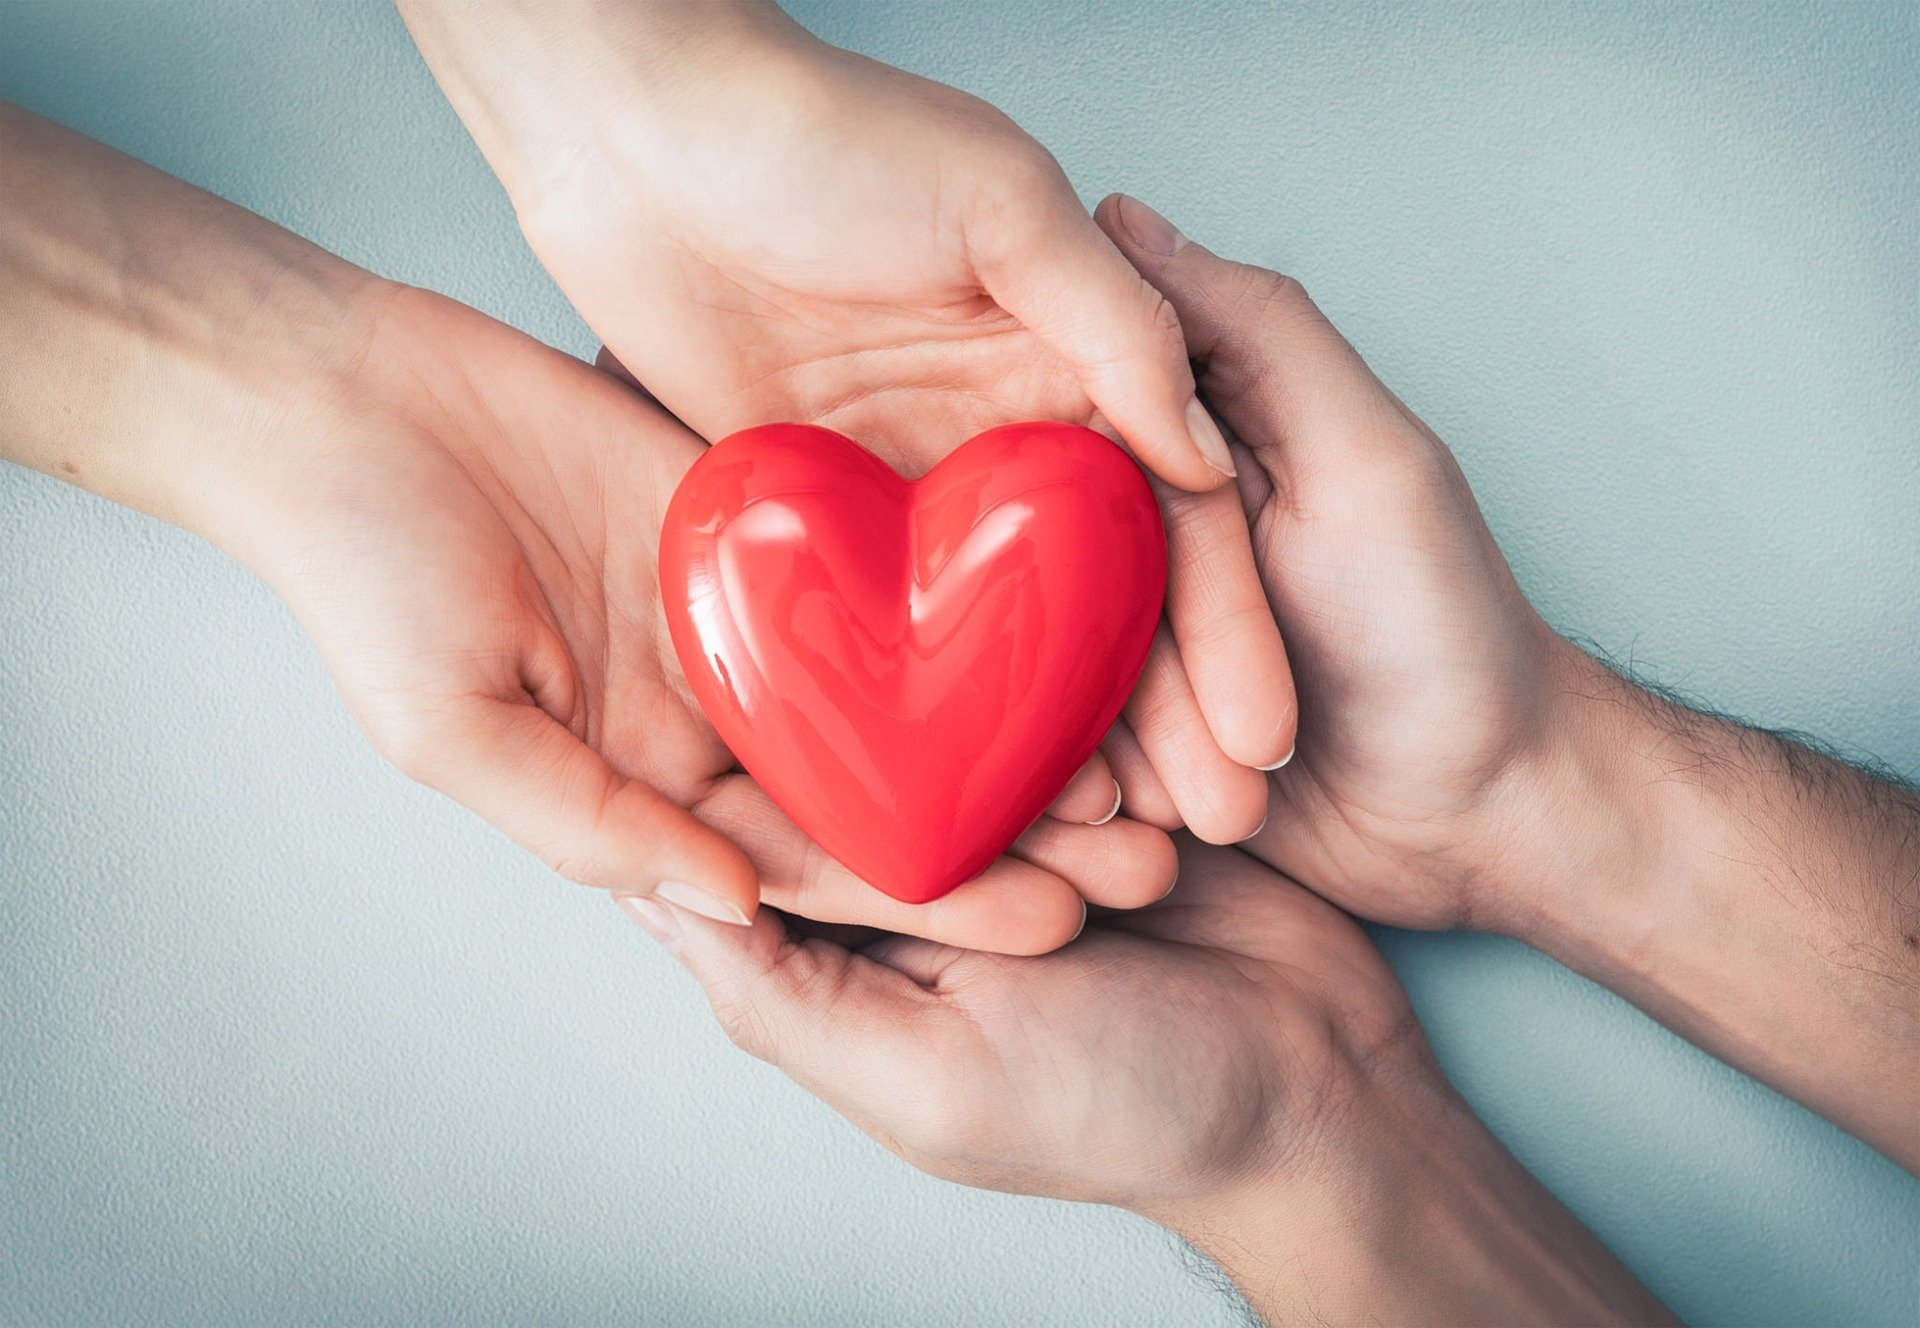 Now More Than Ever, Charitable Giving Is A Smart Financial Move